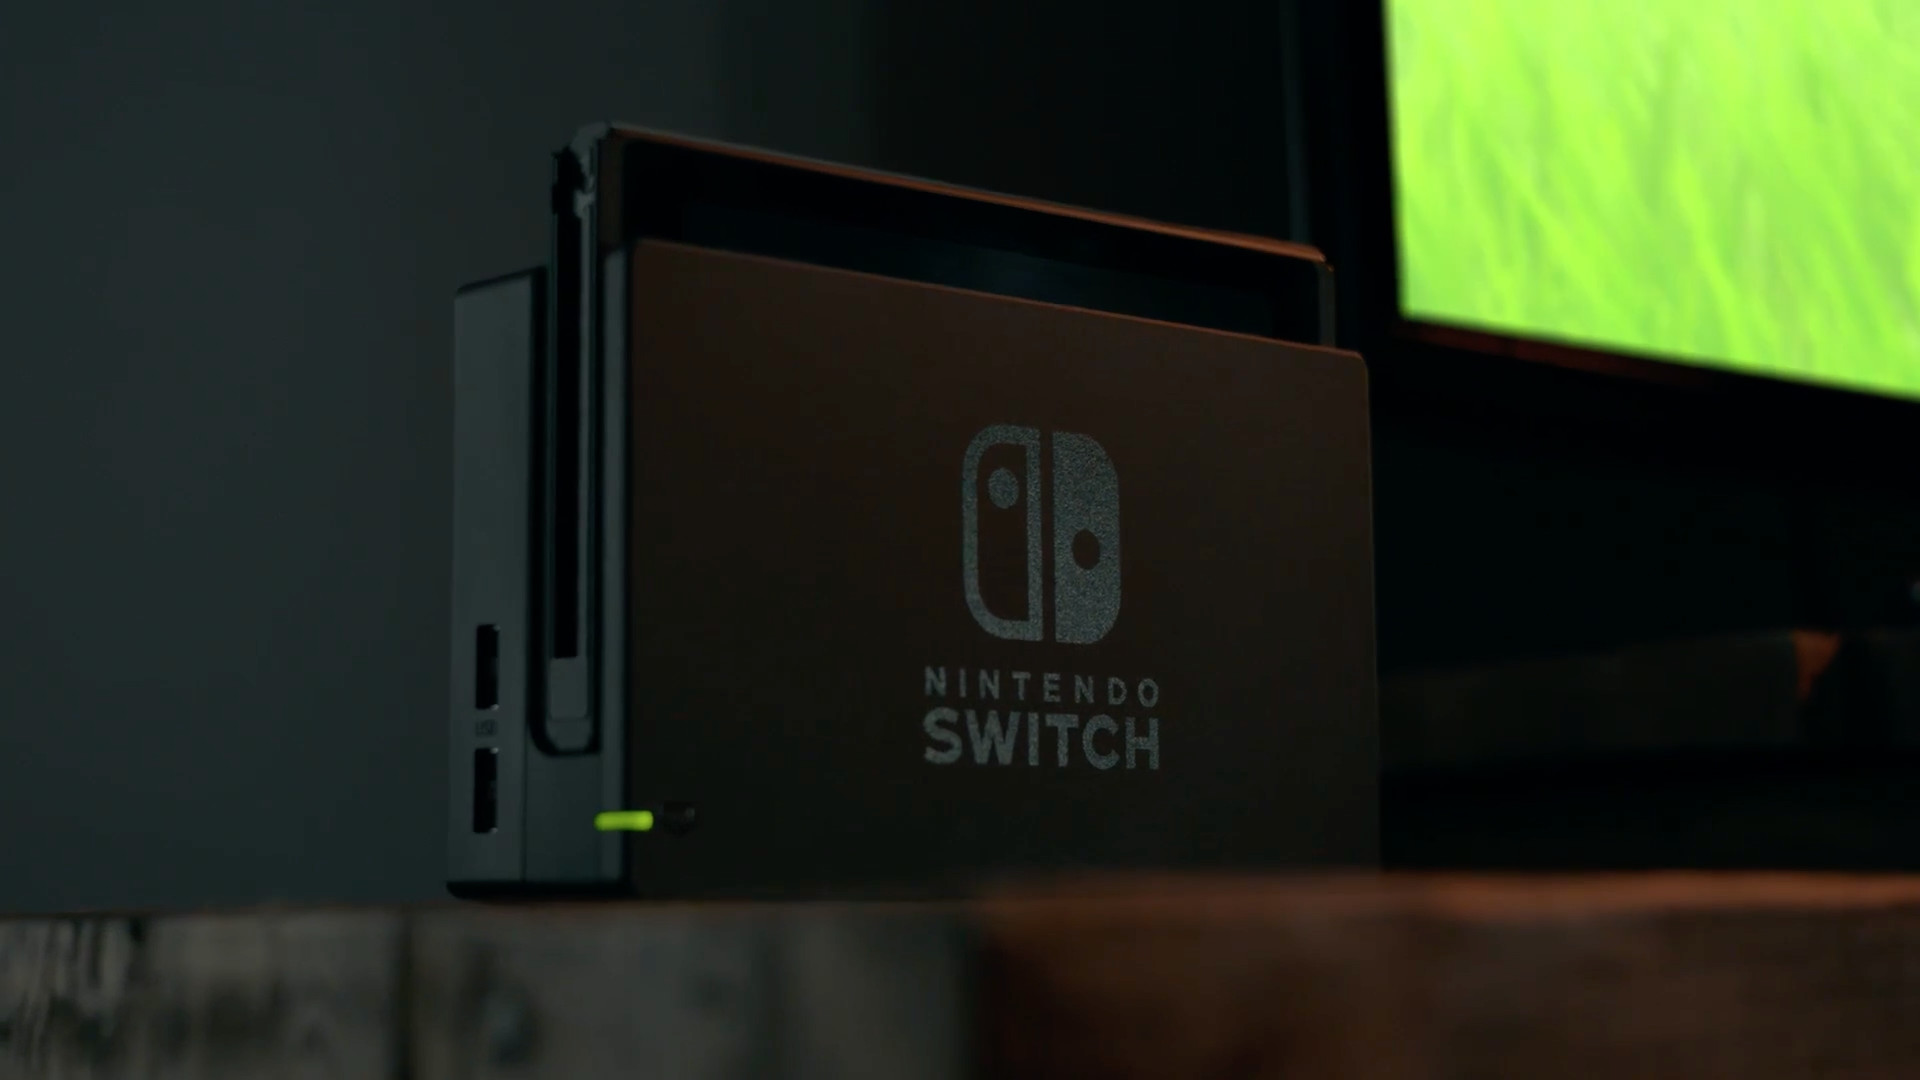 1920x1080 Nintendo Switch HD Wallpaper 60386